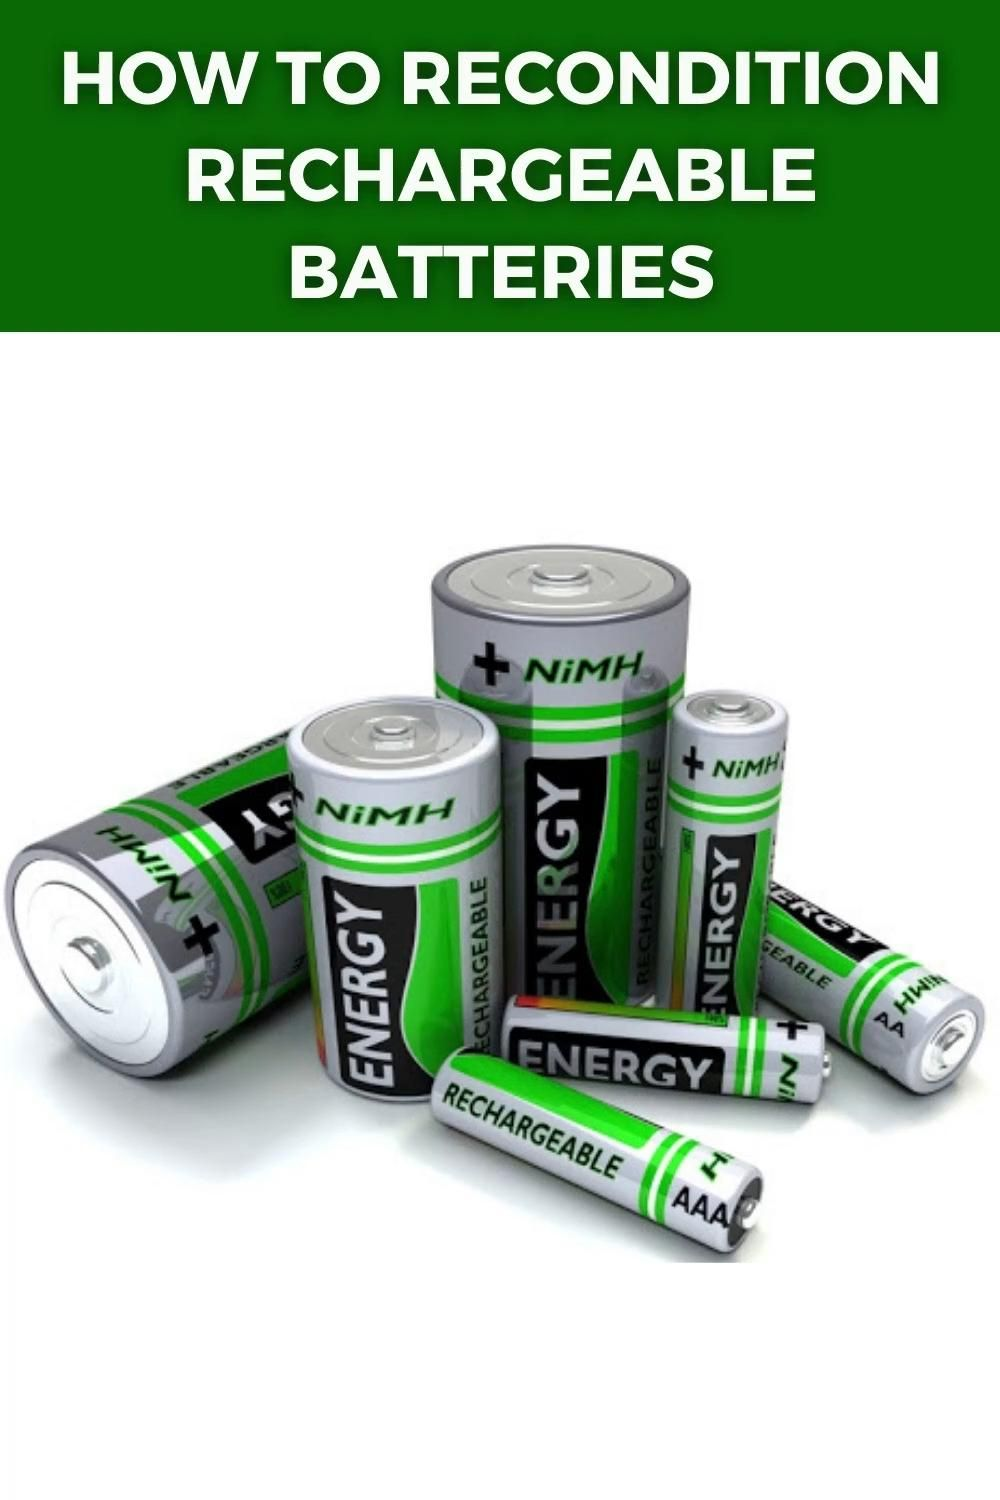 How To Restore A Battery Reconditioning Nicad Batteries Battery Reconditioning Business Fix It Video Recondition Batteries Batteries Diy Battery Repair